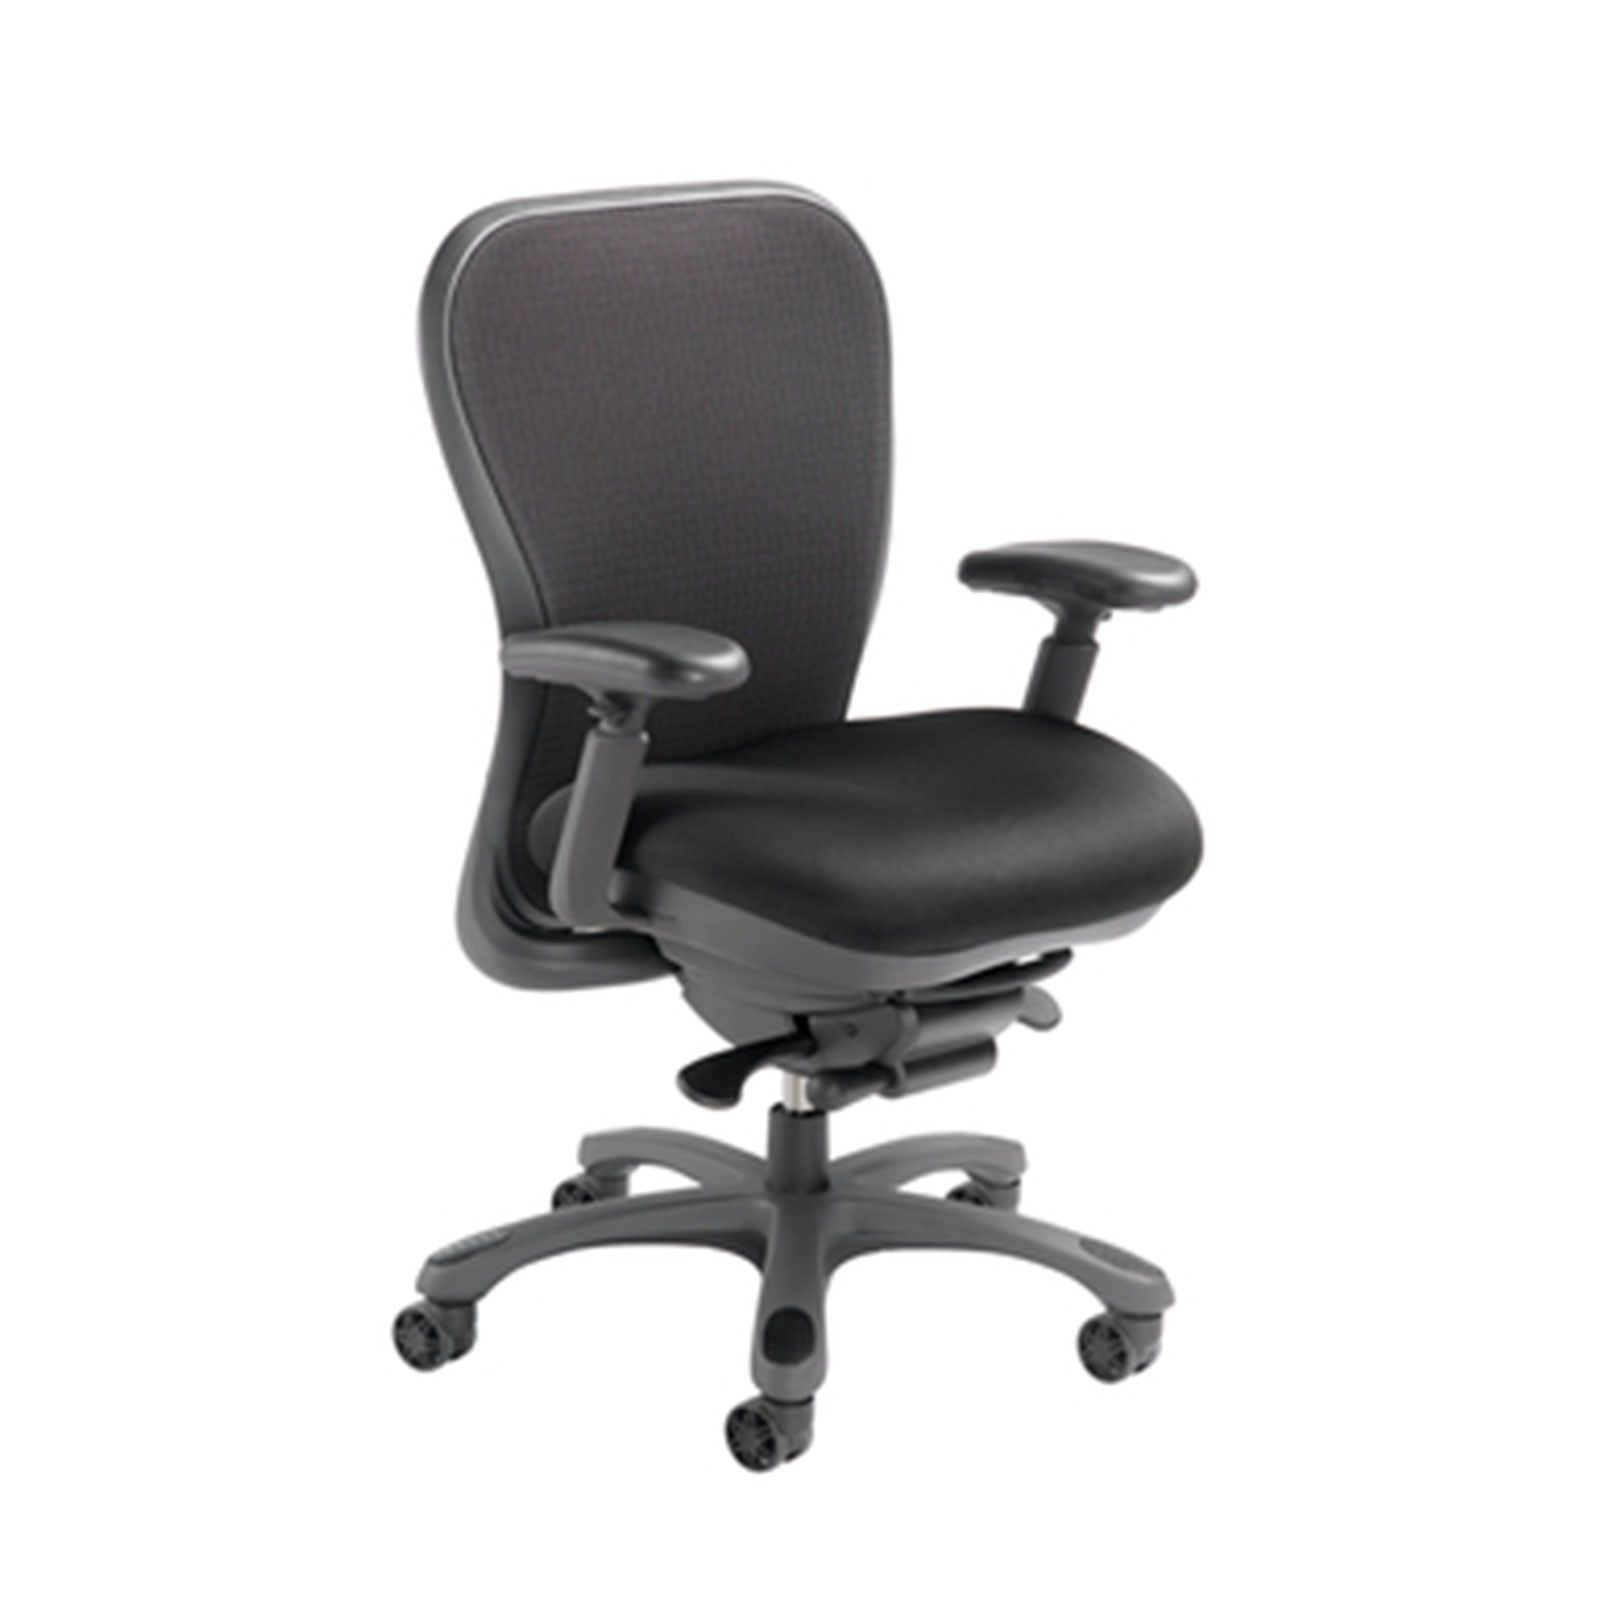 Ikea Stuhl Ergonomisch Cxo Office Stuhl Bürostuhl Bürostuhl Chair Ergonomic Chair